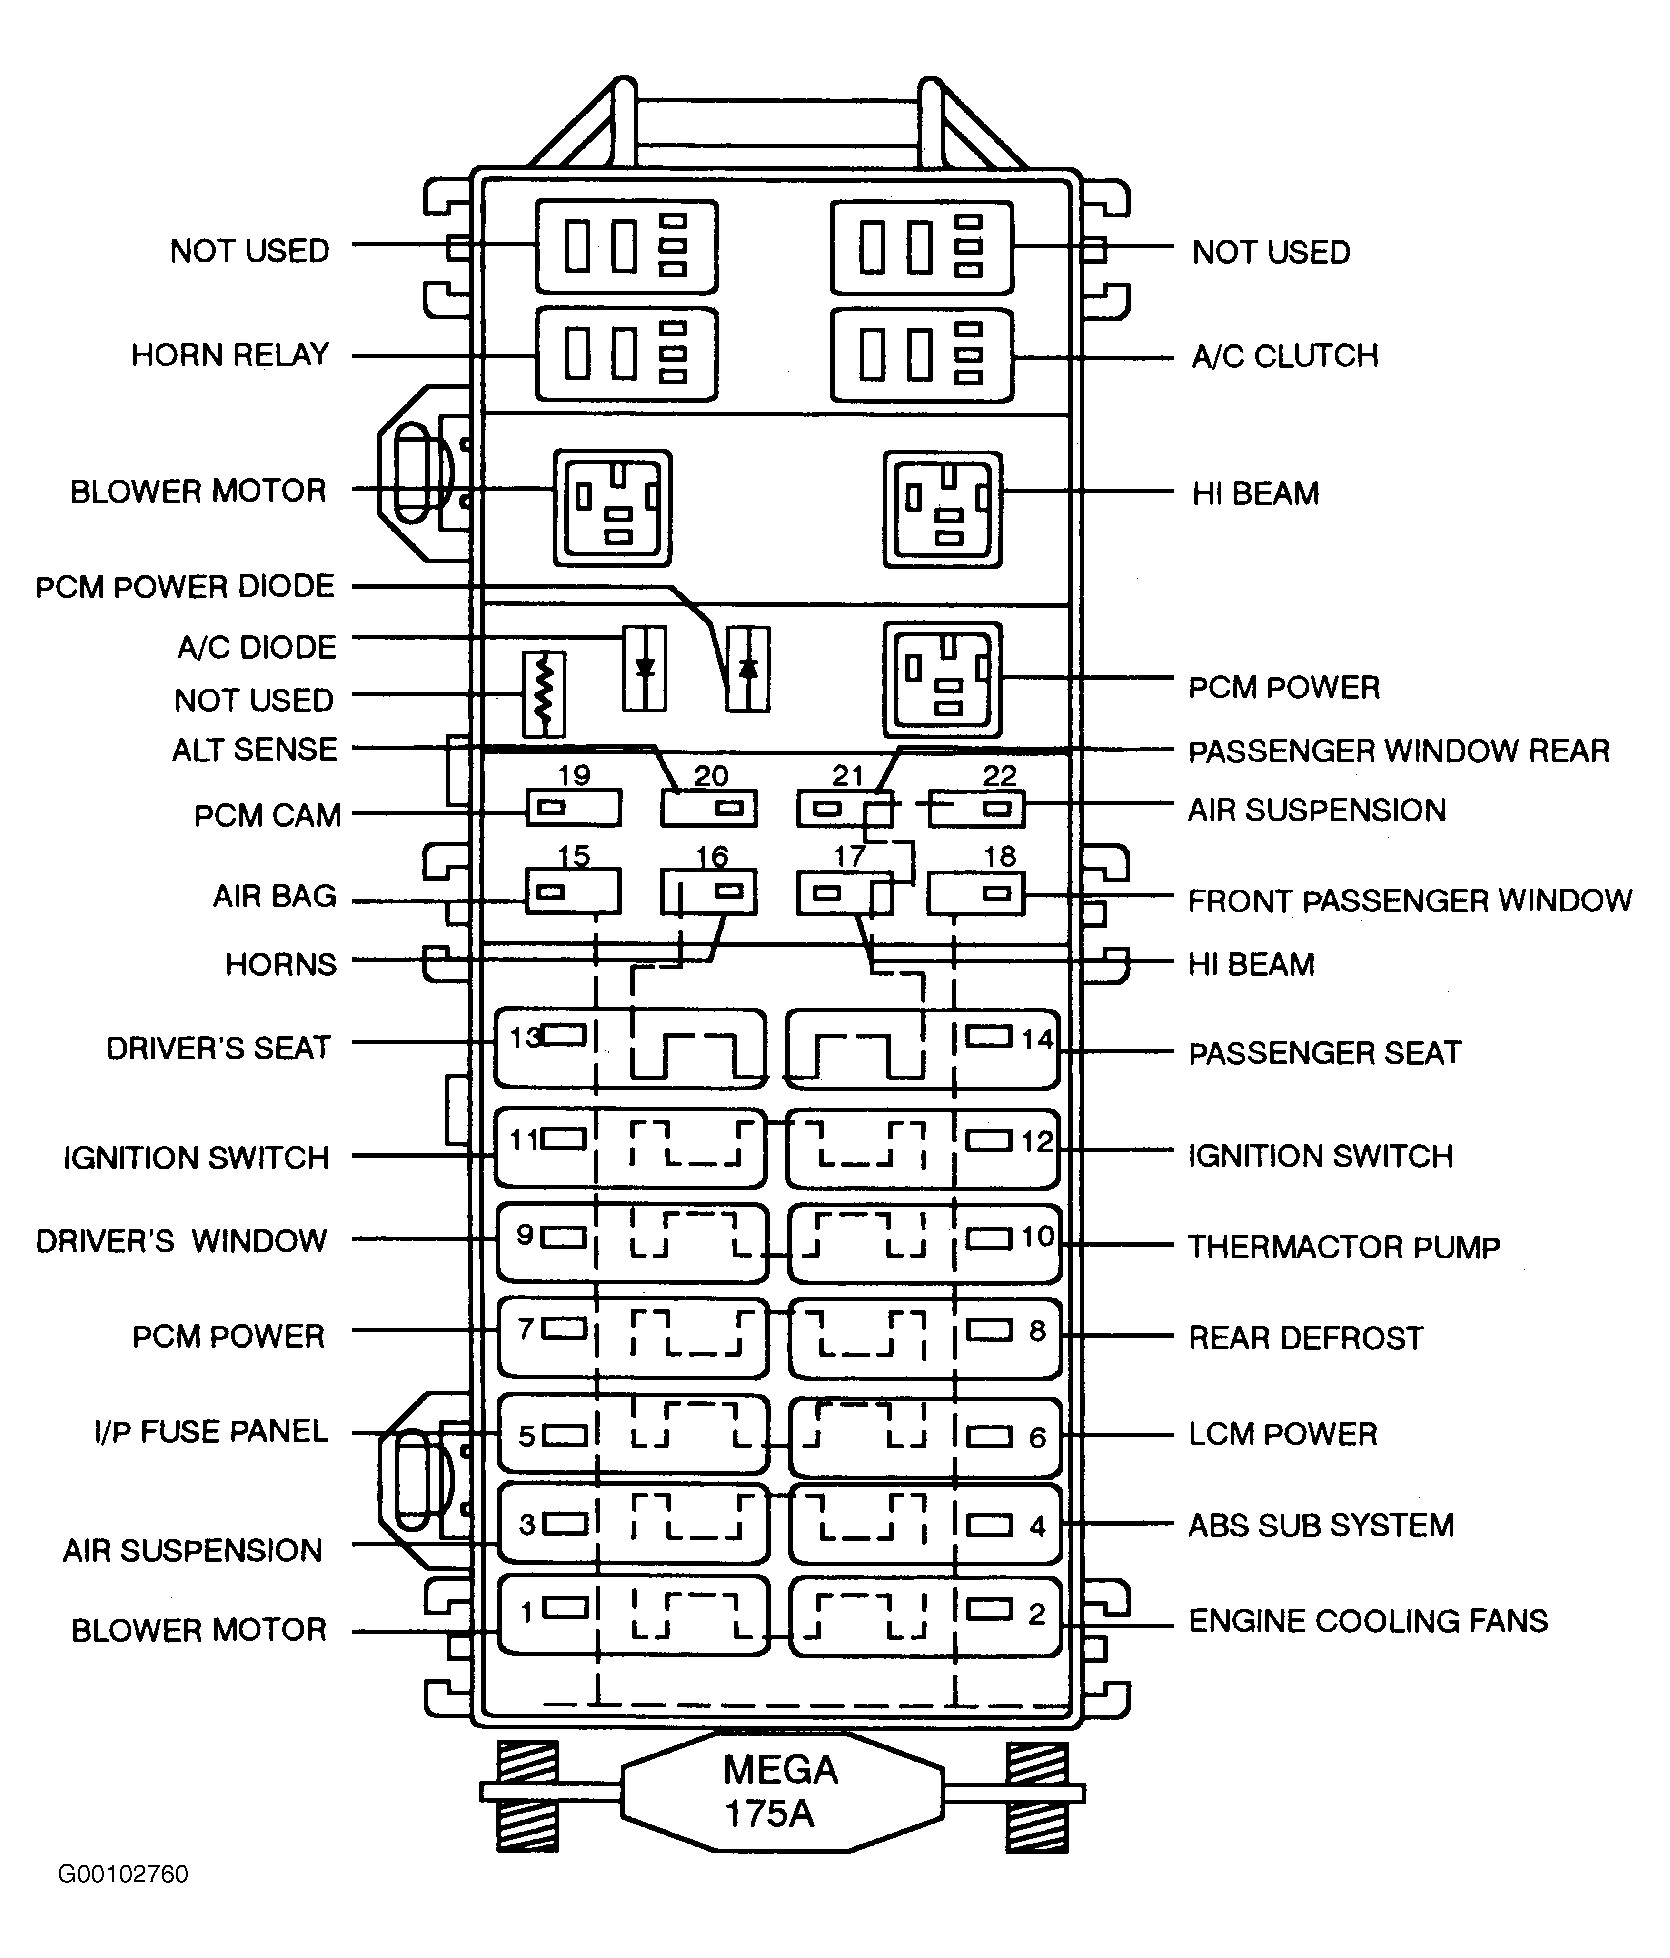 fuse box car wiring diagram page 212 wiring diagram fuse relay box wiring diagram car fuse